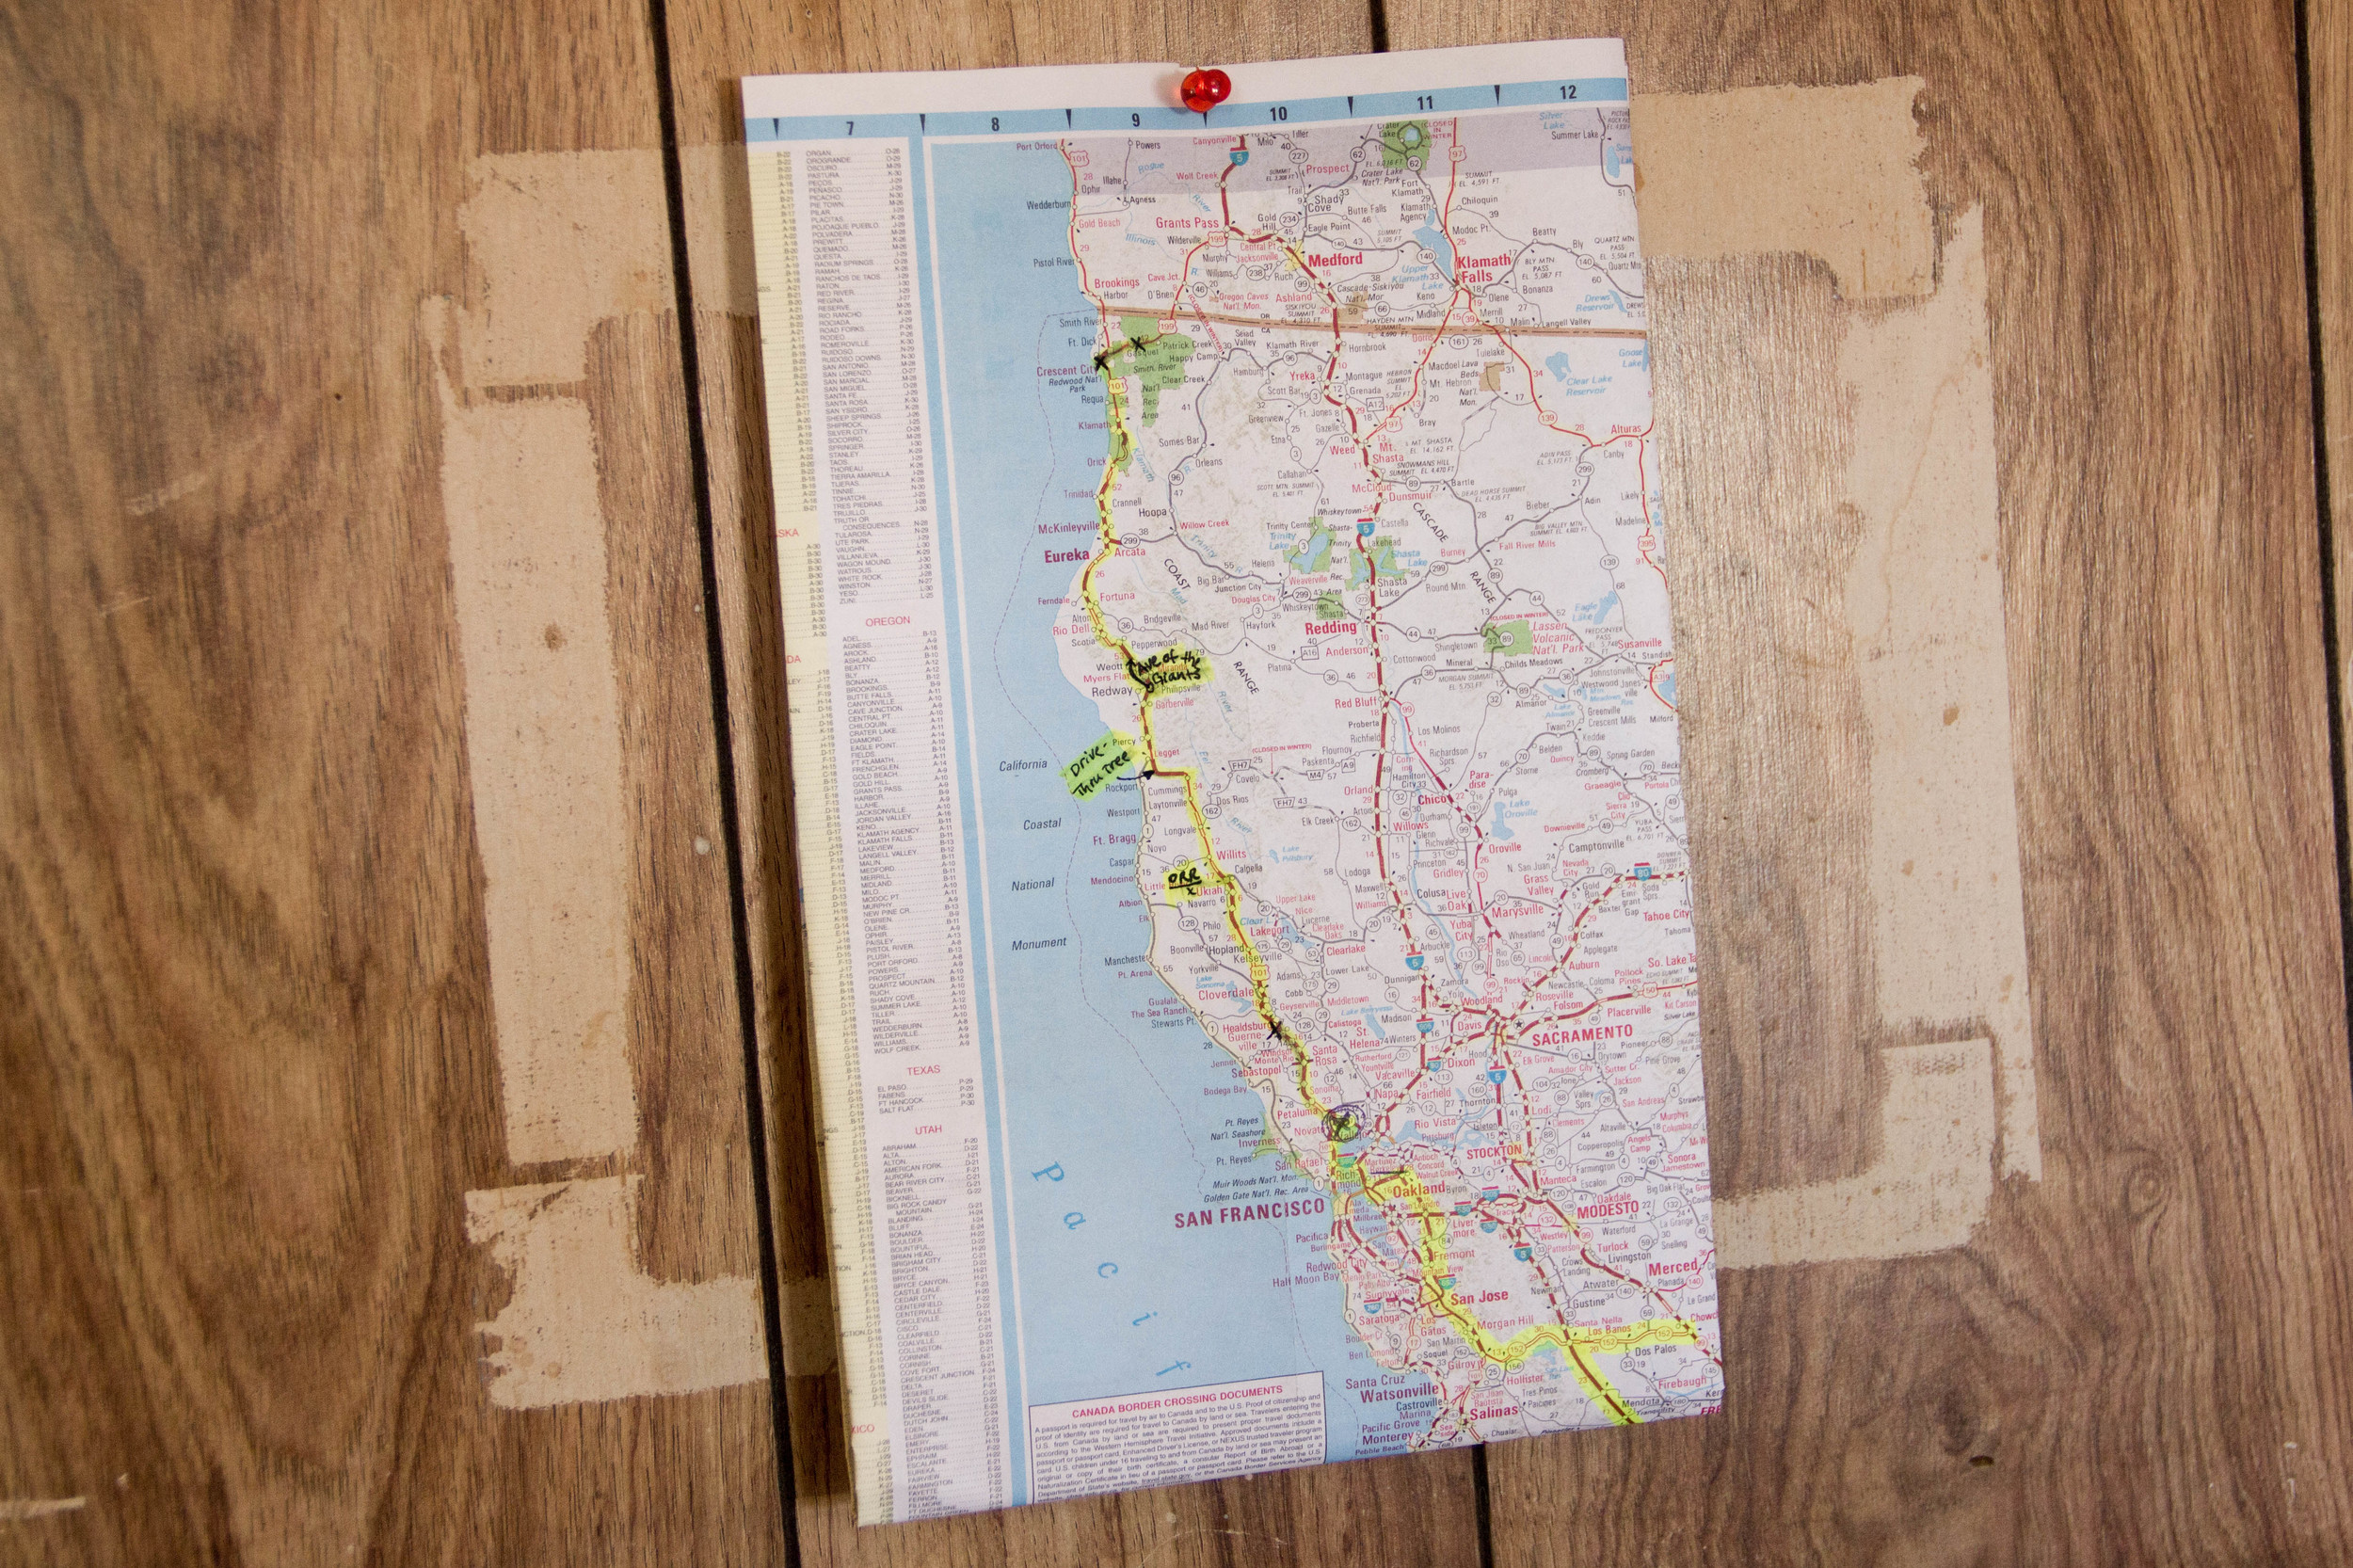 Introducing the annotated roadtrip map